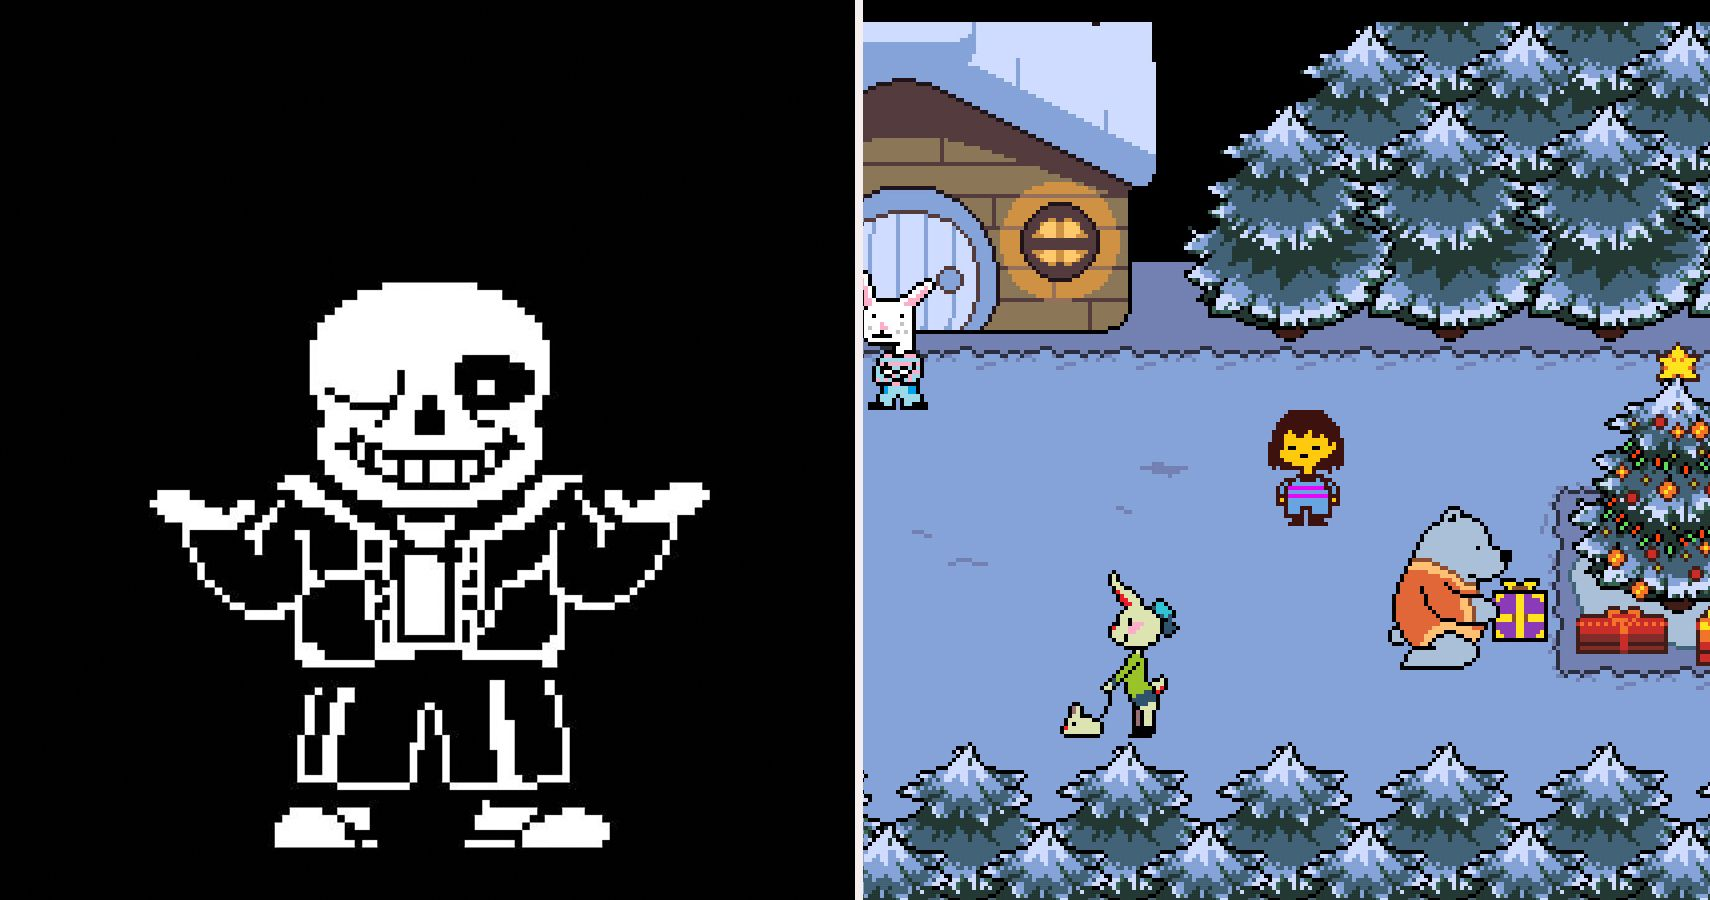 Undertale: 10 Secrets You Didn't Know About | TheGamer